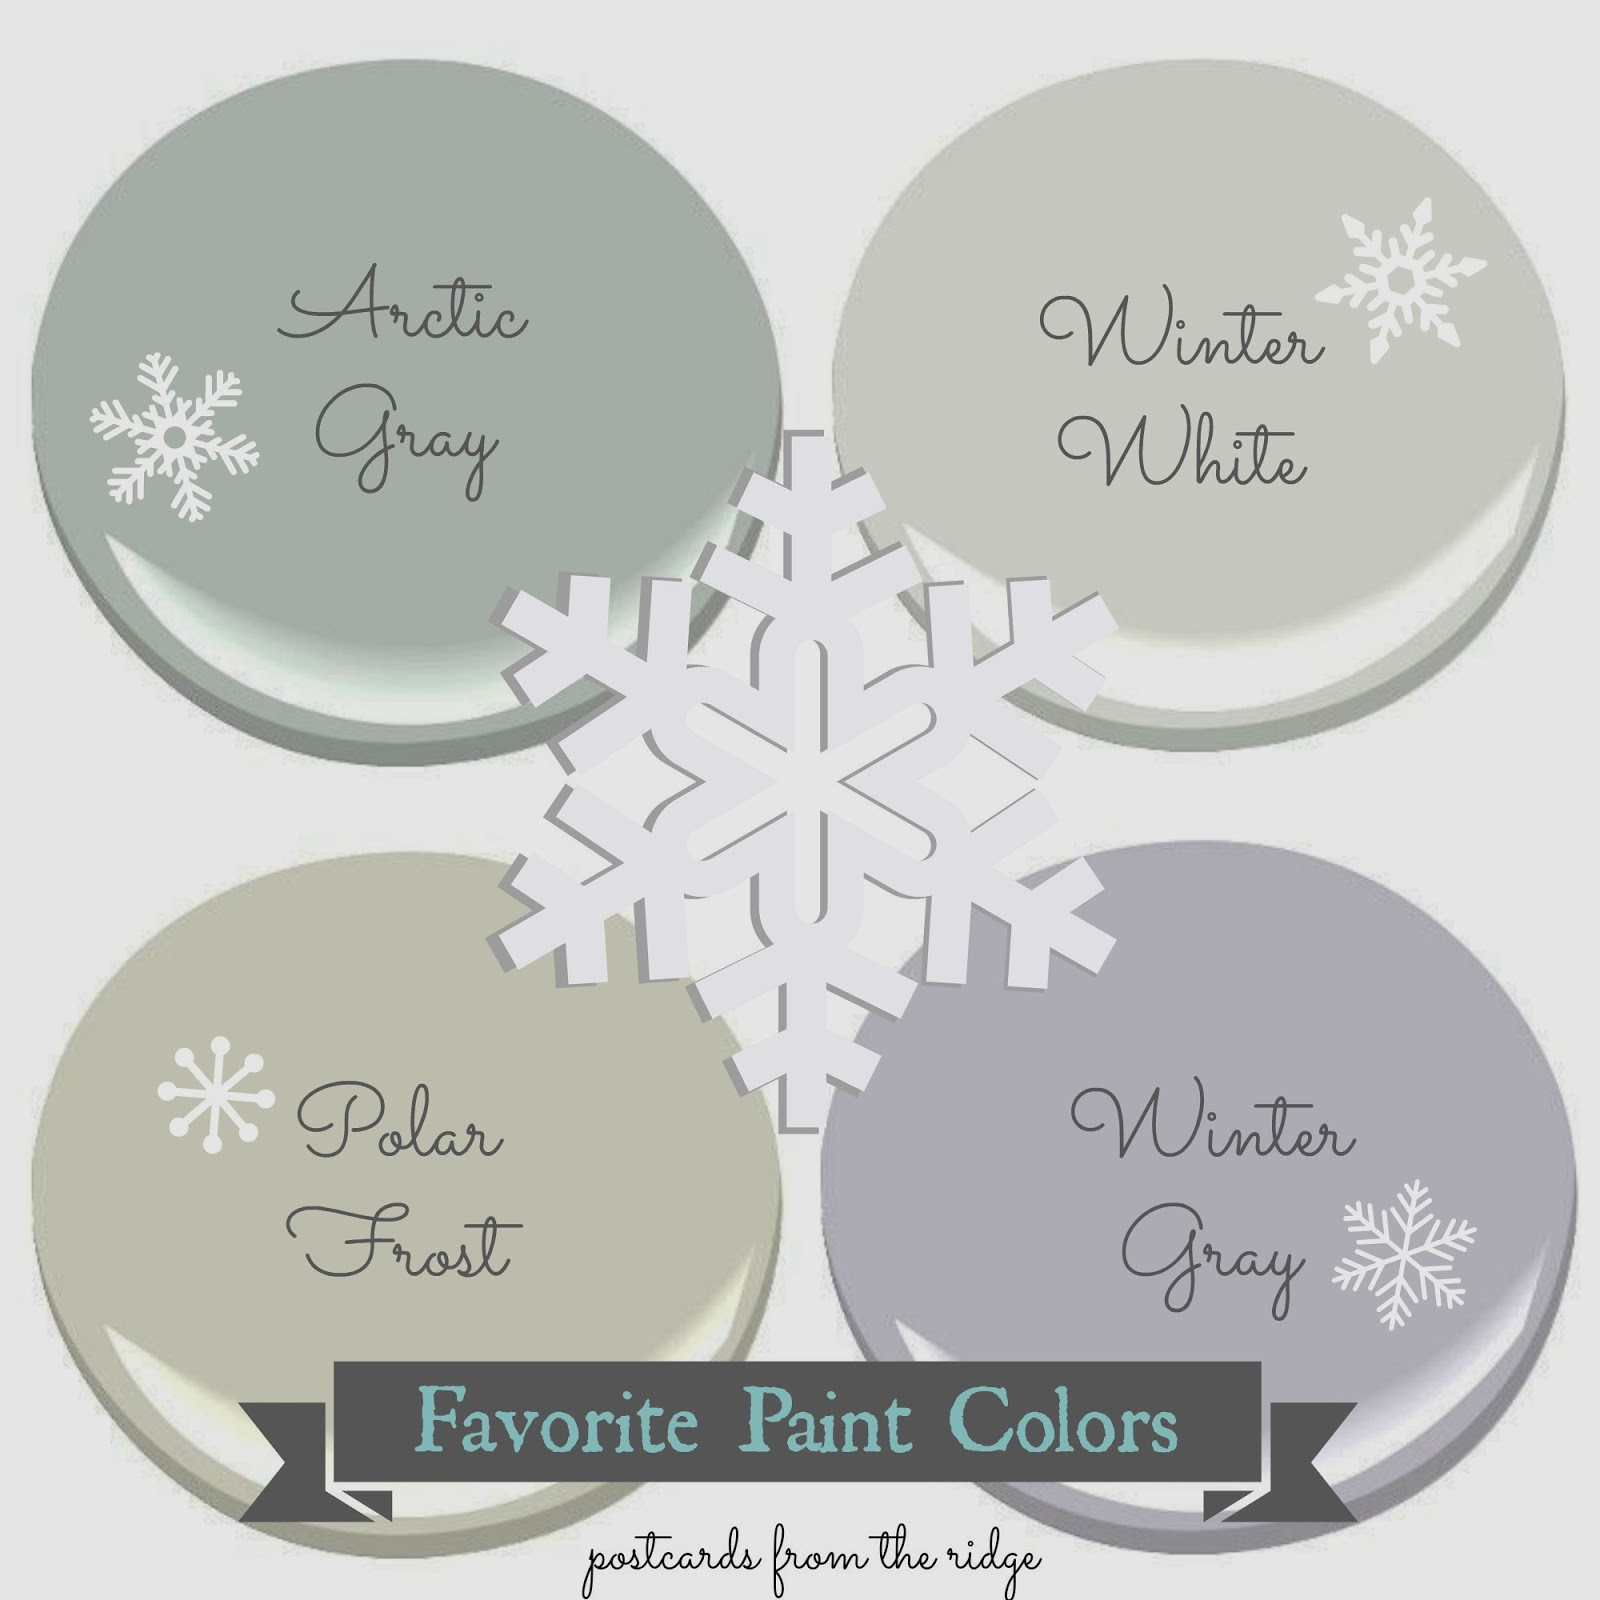 Postcards from the Ridge: Deep freeze edition ~ Favorite Paint Colors